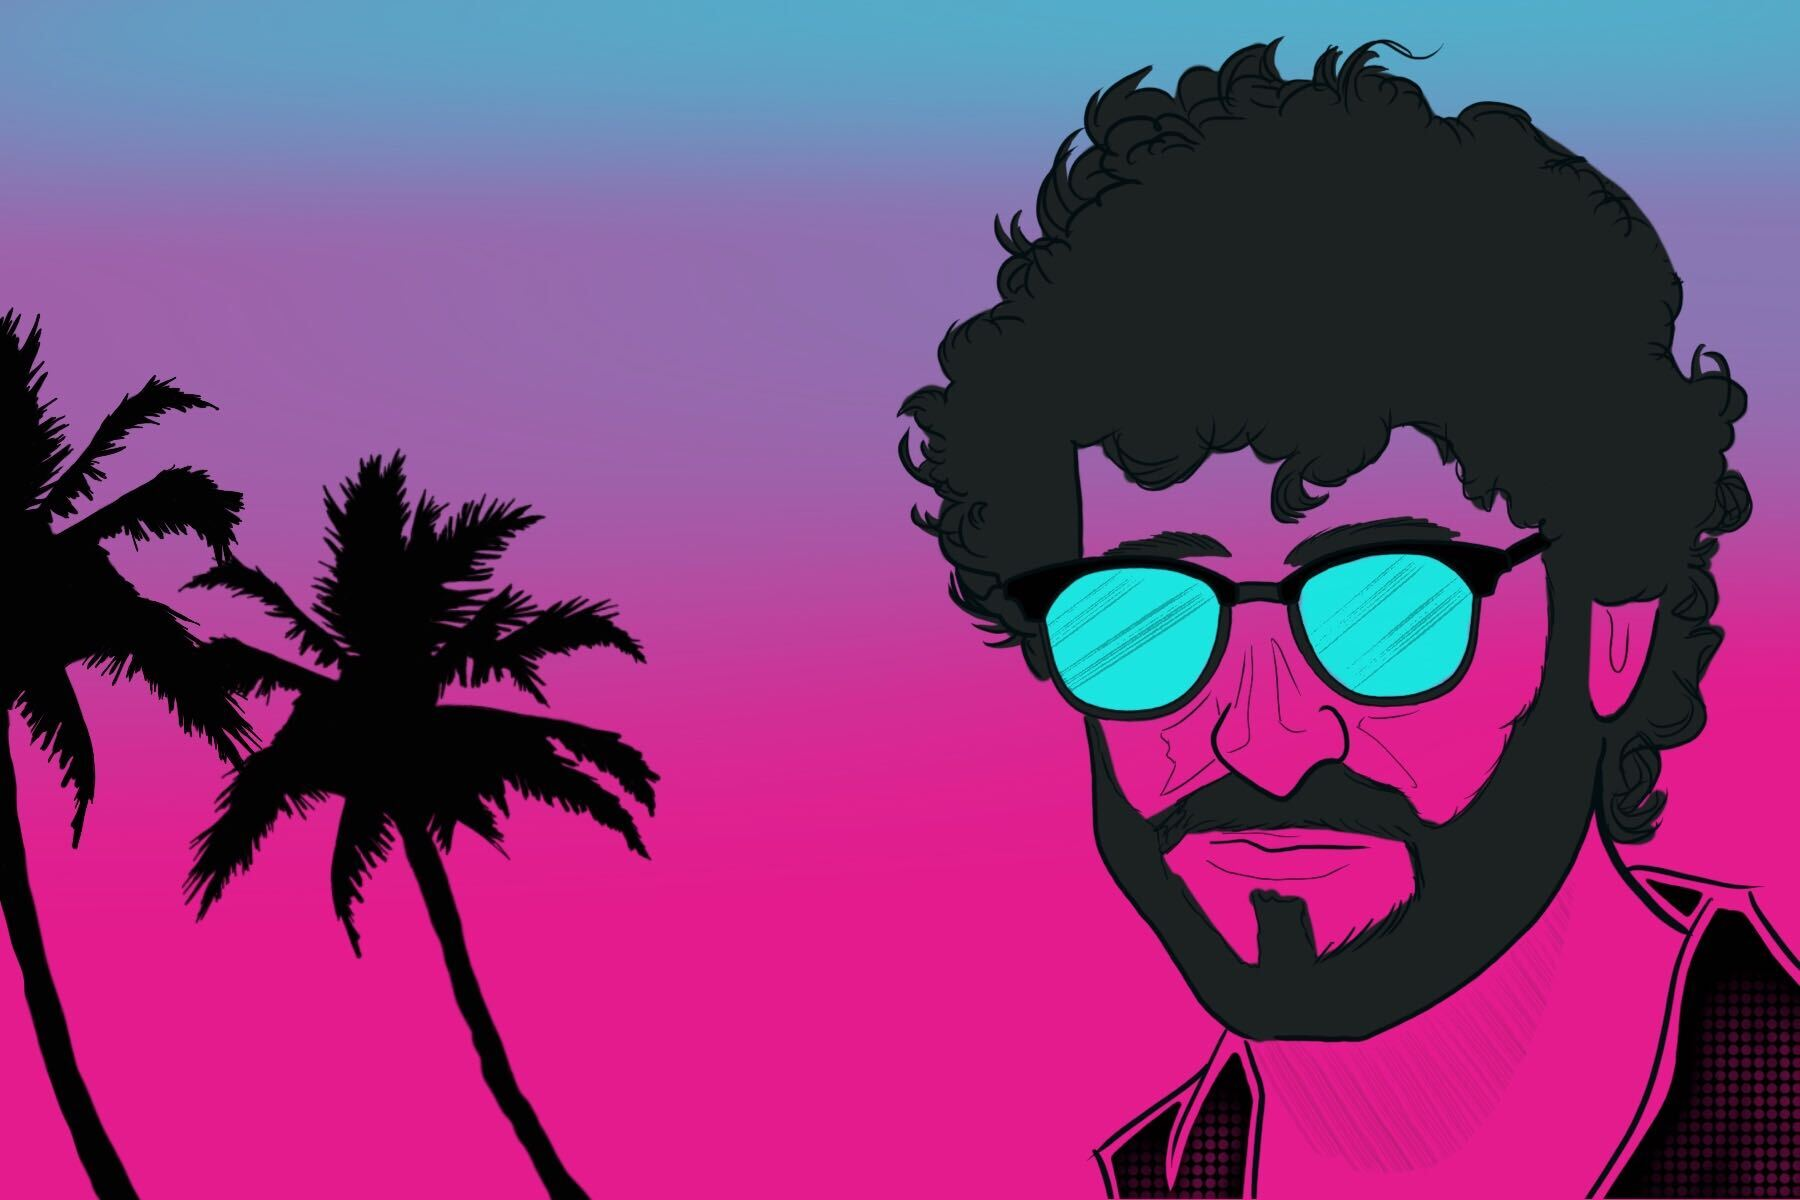 Dave Burd, better known as rapper Lil Dicky, against a sunset behind some palm trees